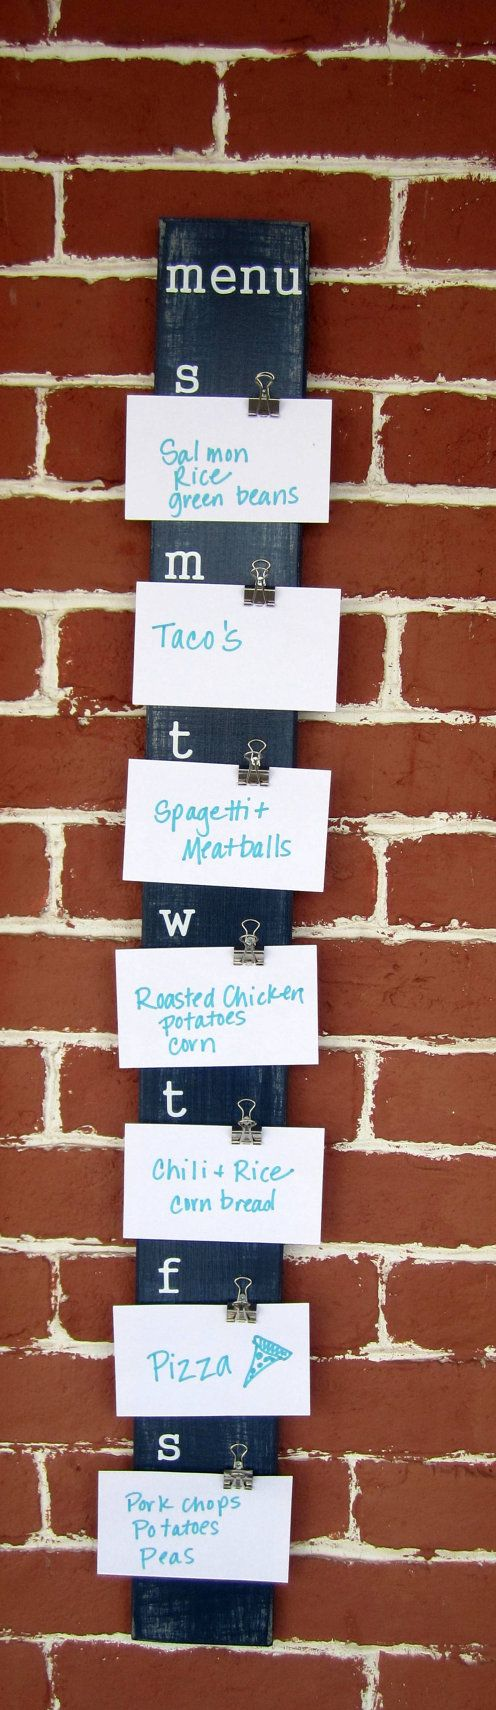 "New idea- Weekly Planning Menu Board - 3.75"" x 36.5"" - Using index cards rather than chalkboard paint. Put recipe and shopping list on back for quick menu planning"